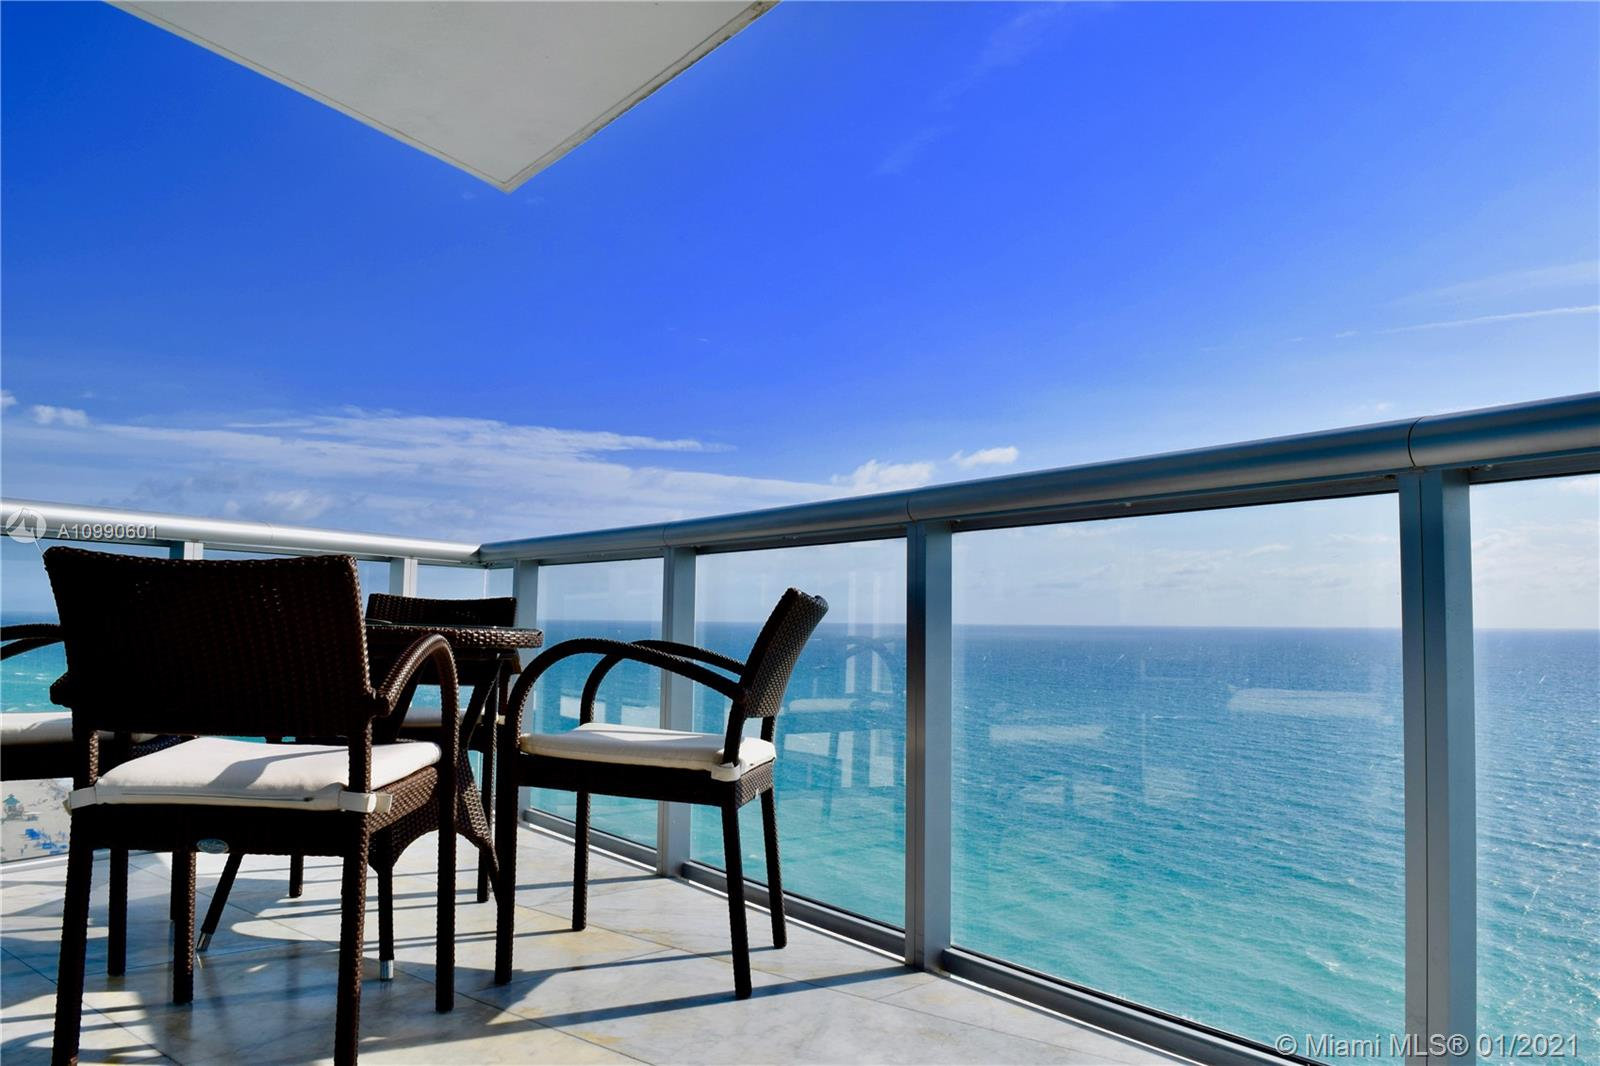 Stunning 3 Bedroom and 3 Bathroom apartment at Jade Beach, with direct ocean views and fully furnished, ready to move in. This apartment includes 2 ASSIGNED PARKING SPACES and 3 OVERSIZED DEPOSITS, along with a 100 bottle wine cellar.  The apartment comes with subzero appliances, and state of the art kitchen, floor-to-ceiling impact windows and the most amazing Ocean Views!